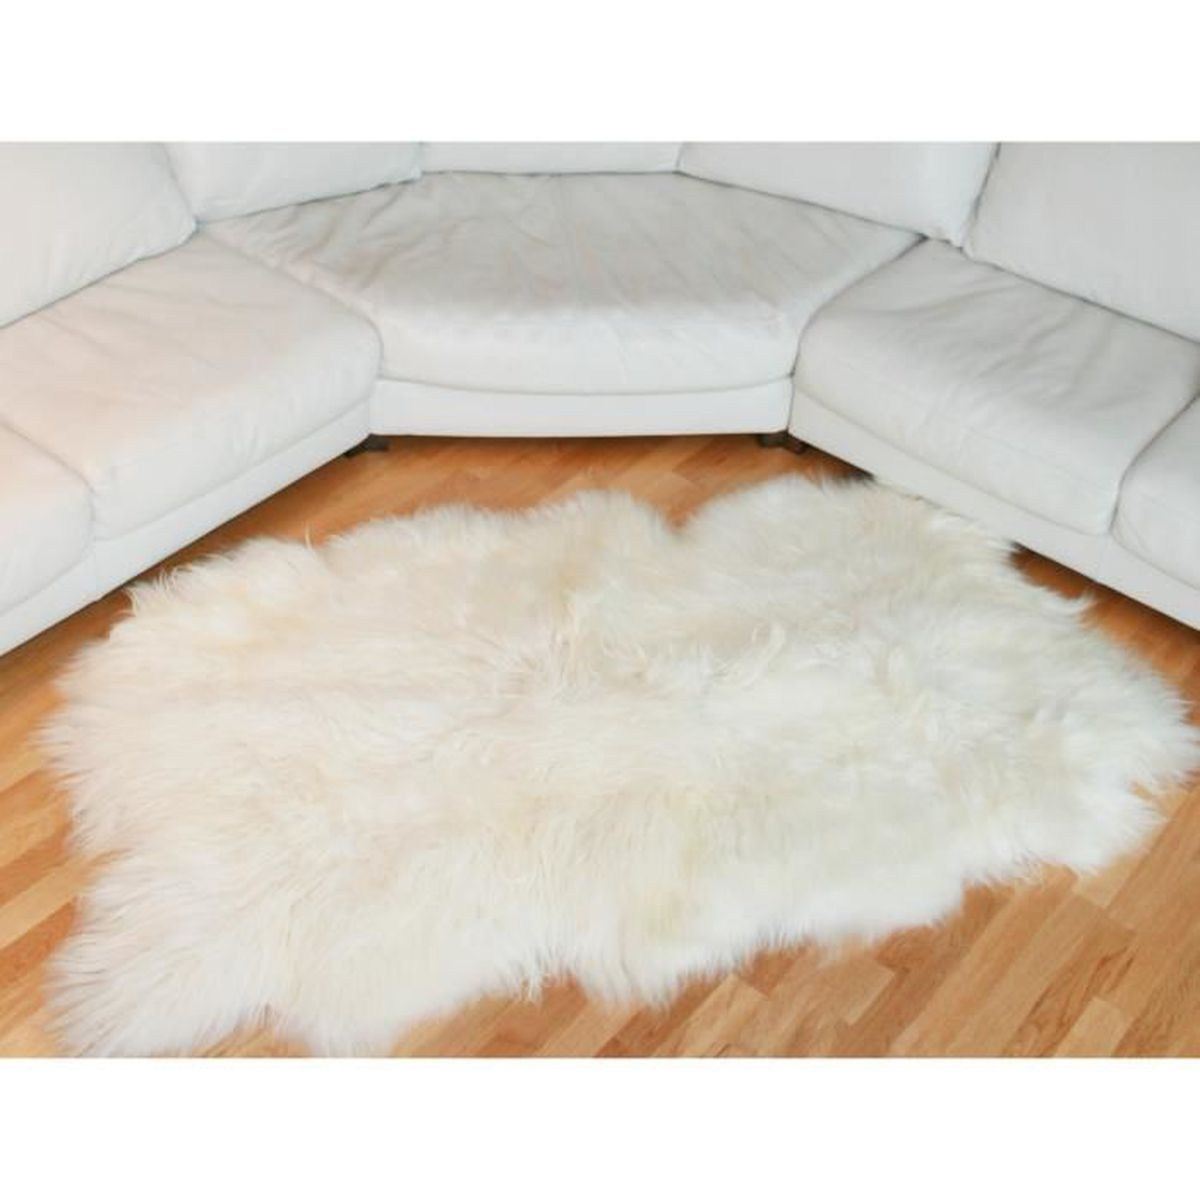 tapis en peau de mouton islandais blanc achat vente tapis cdiscount. Black Bedroom Furniture Sets. Home Design Ideas